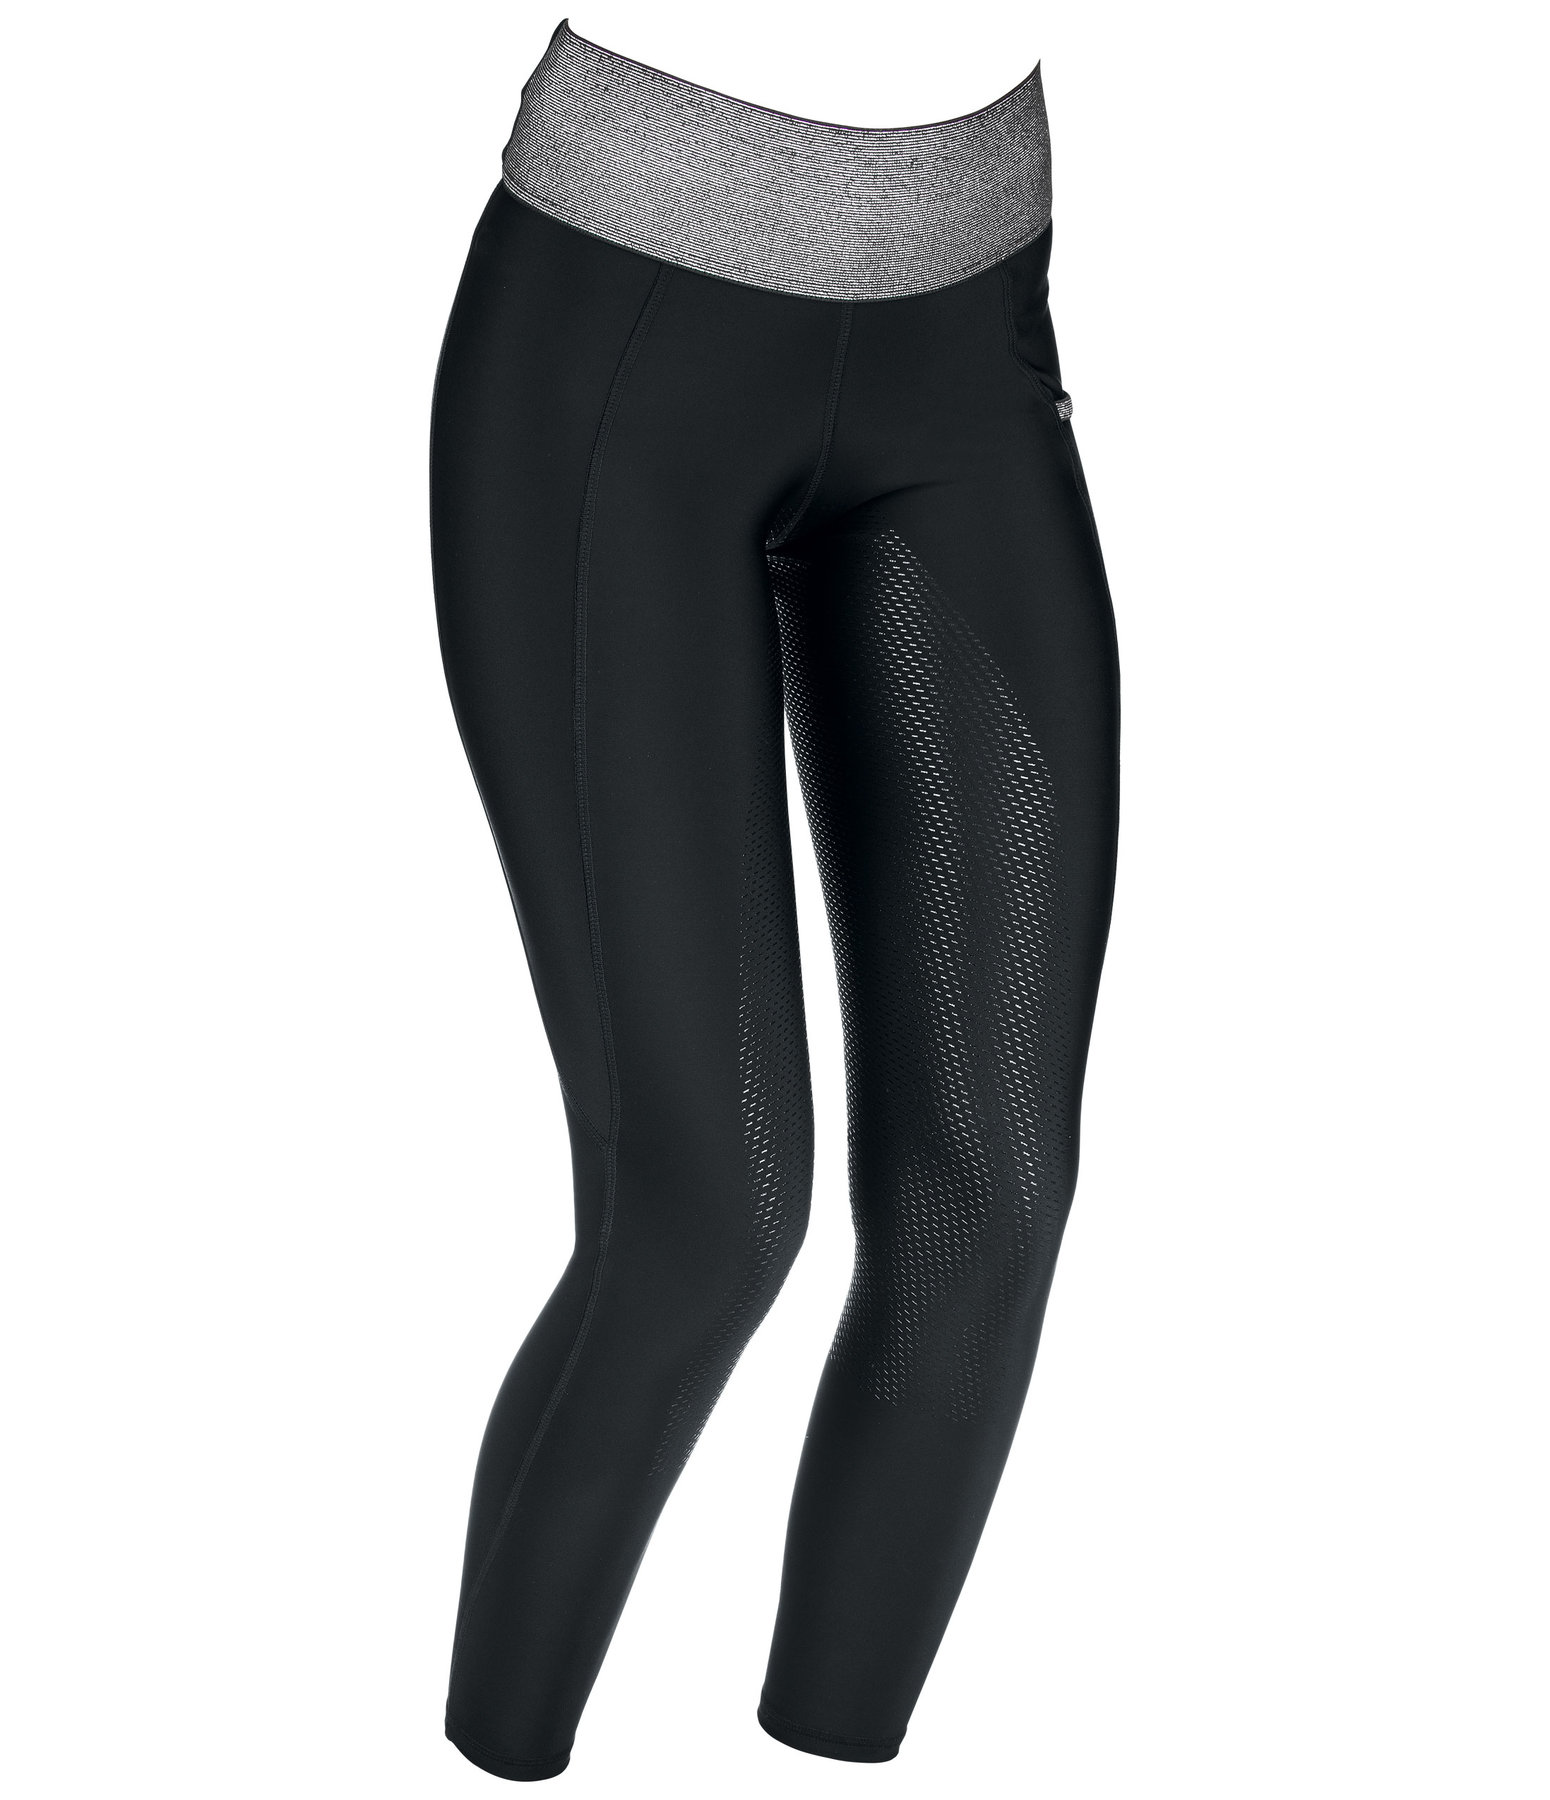 Grip-Vollbesatz-Reitleggings Celina